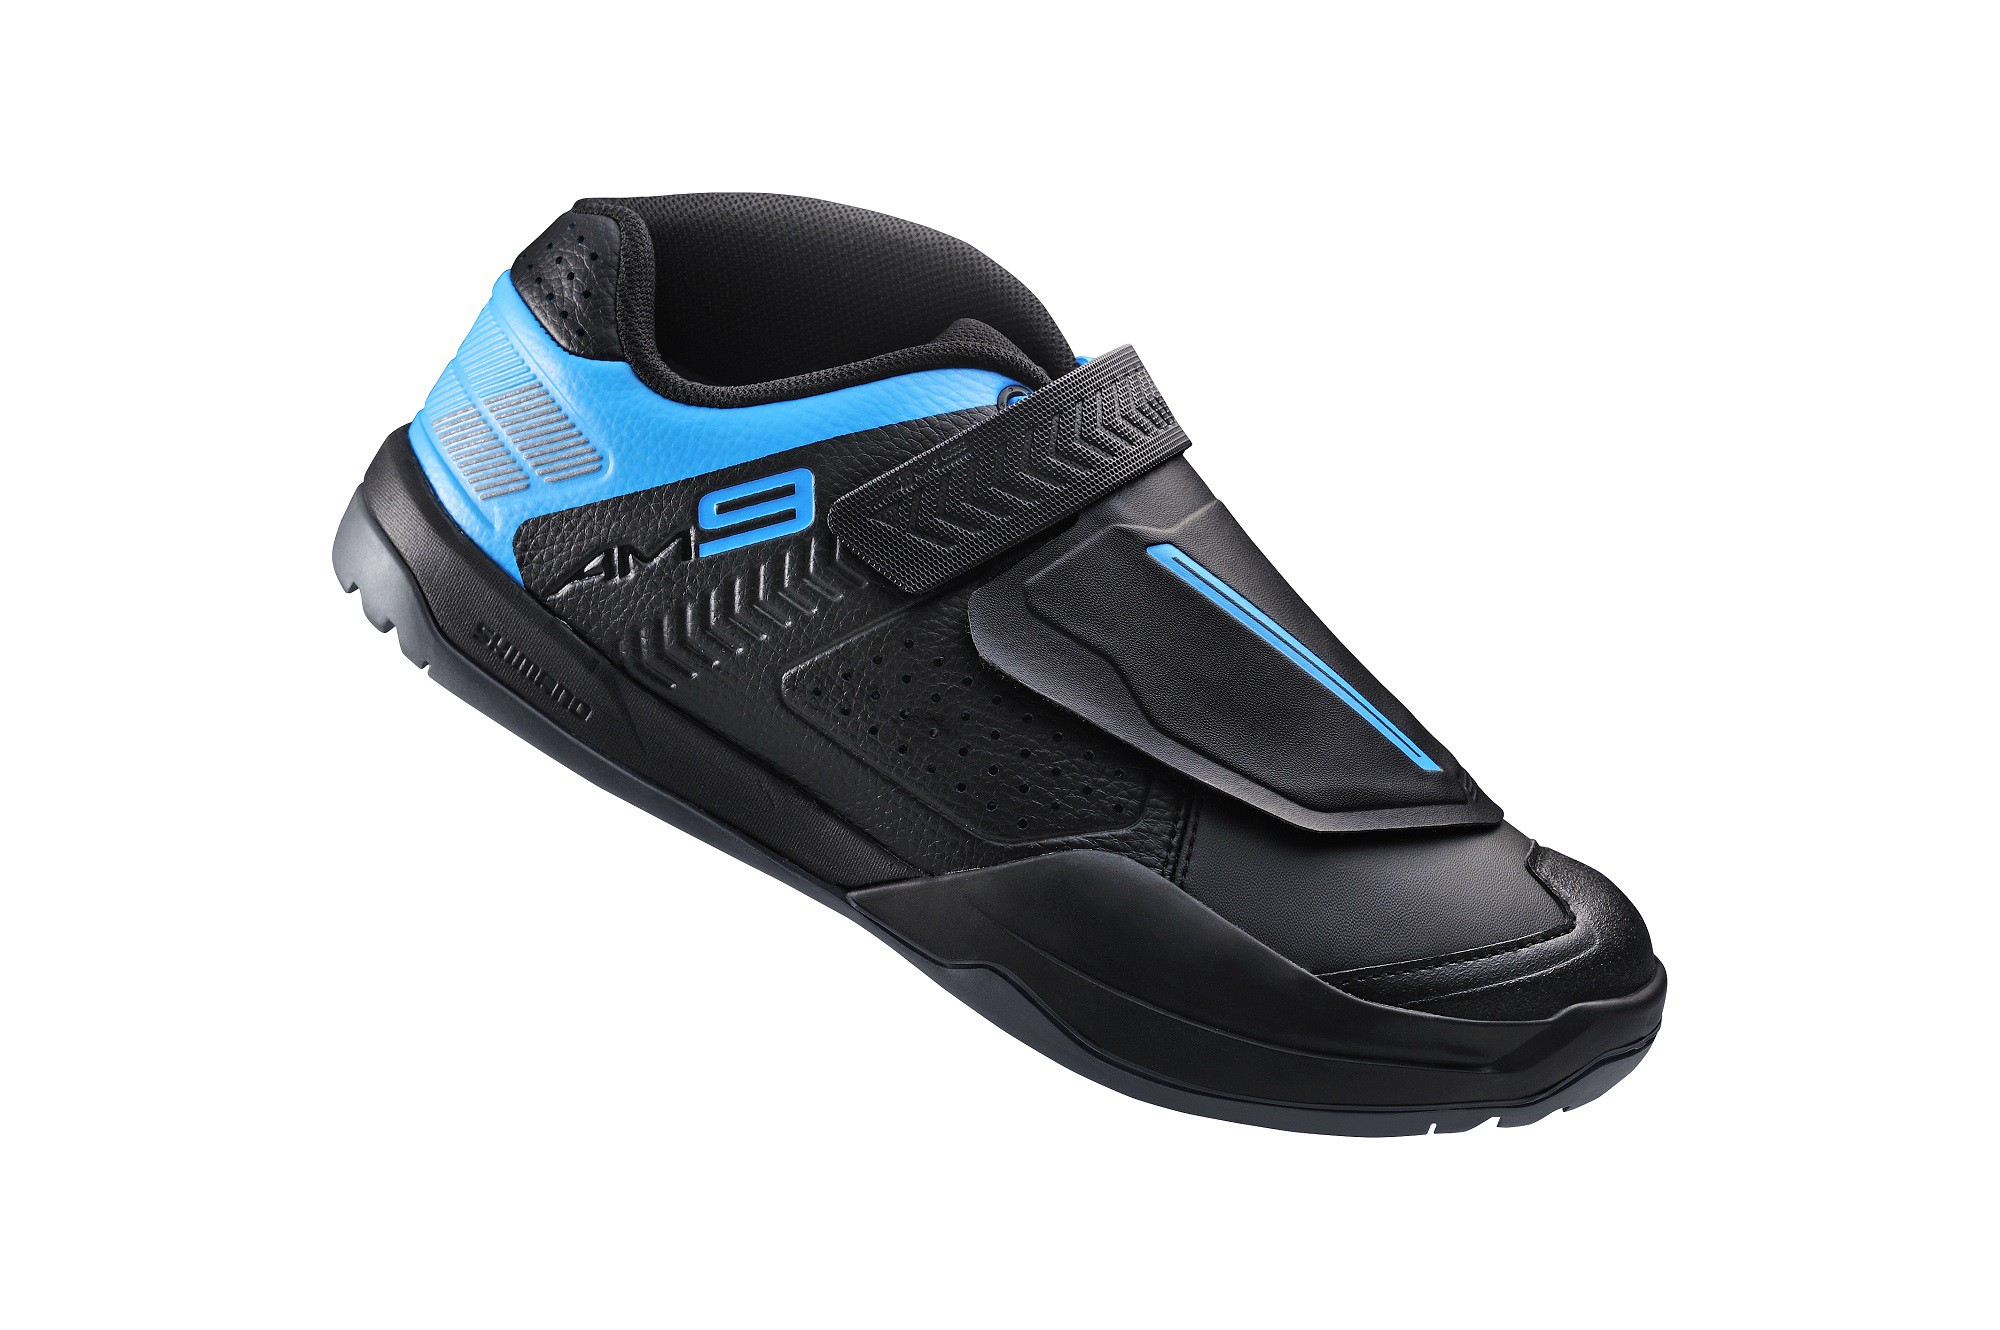 CHAUSSURE AM9 2016 SHIMANO Cycles Evasion